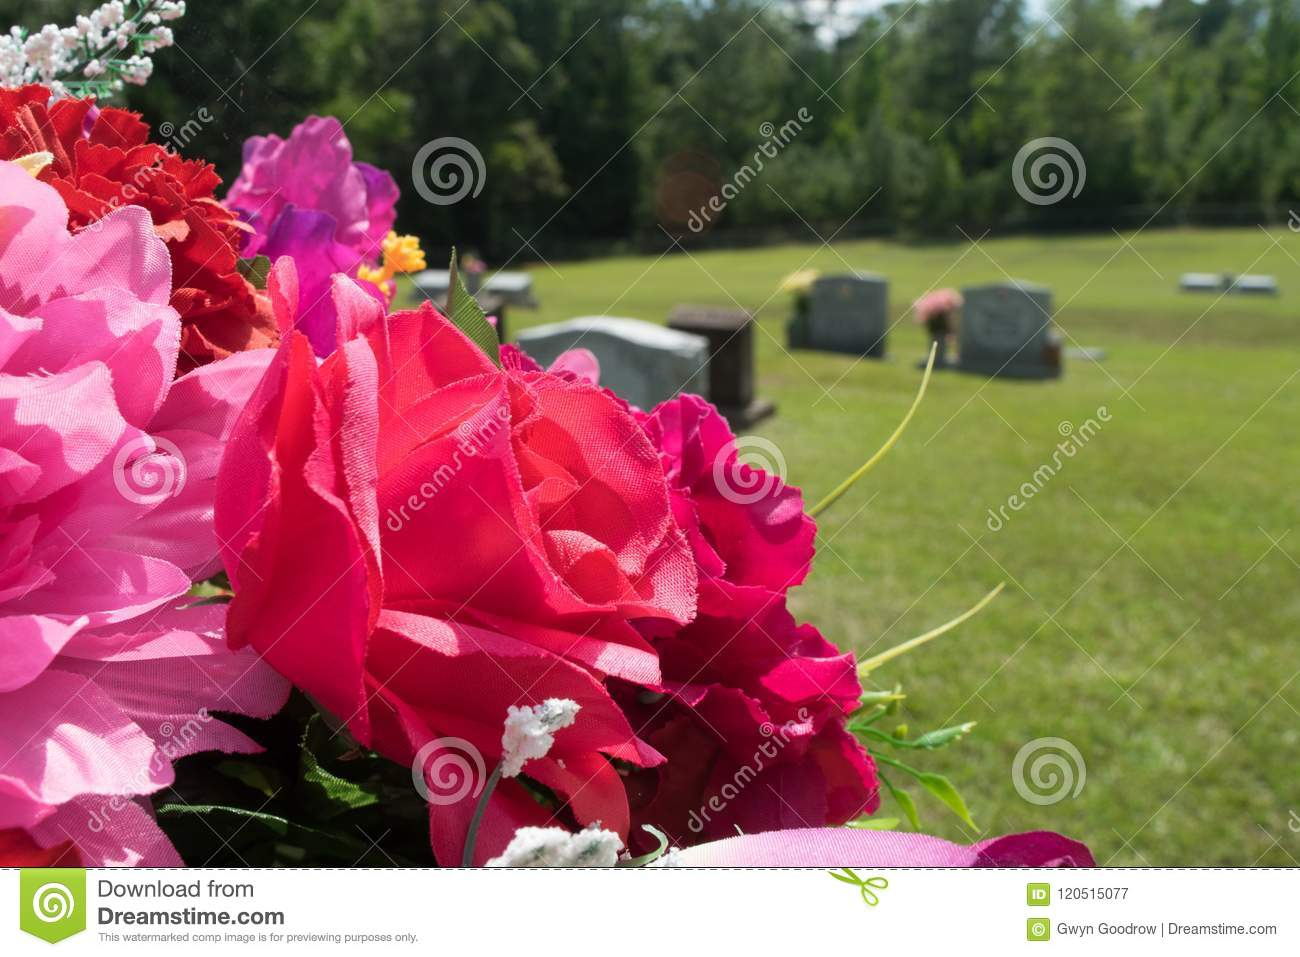 Pink and red fabric flowers in cemetery